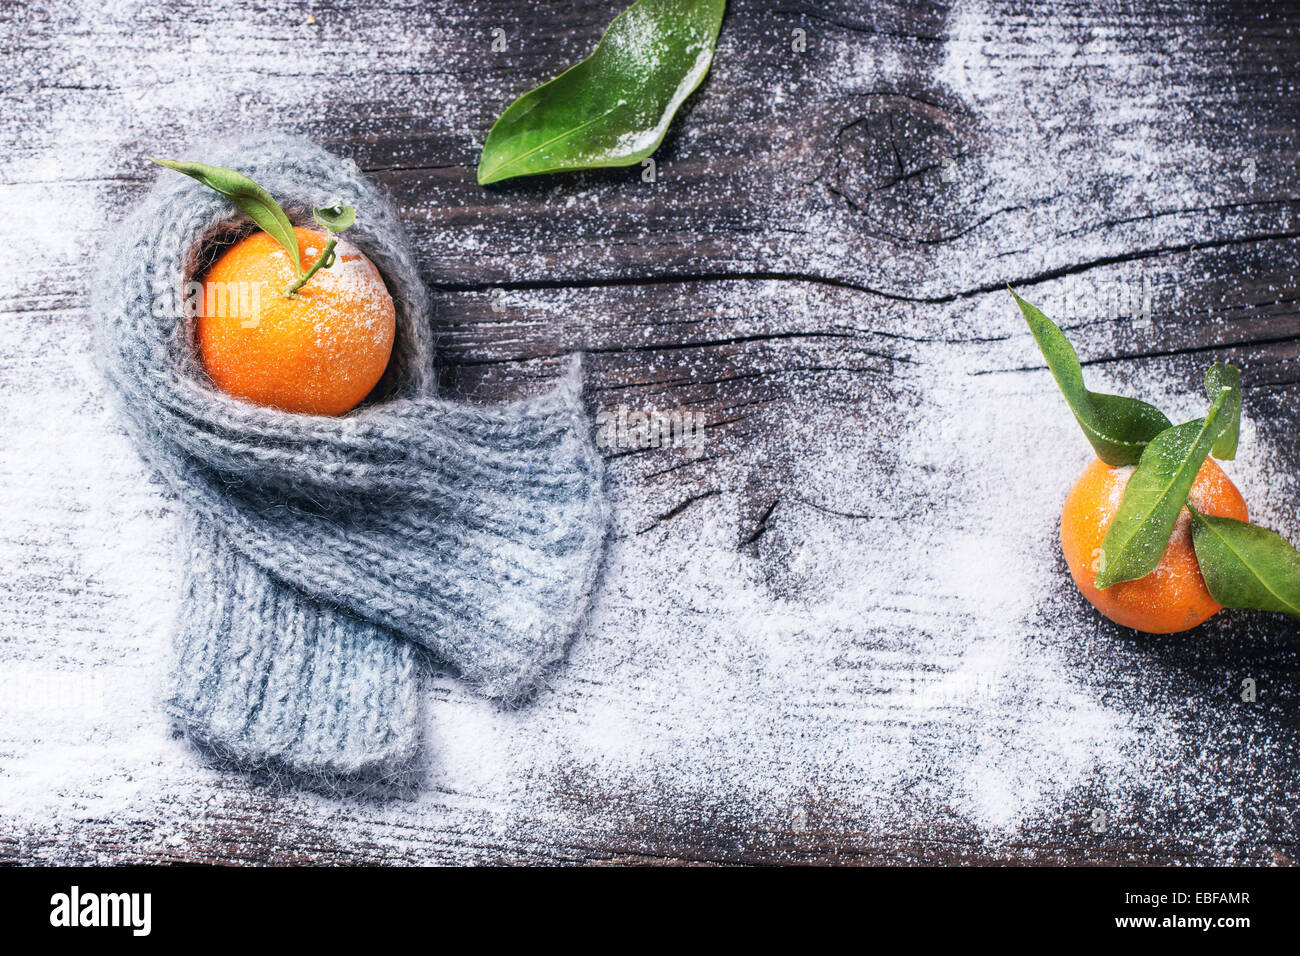 Tangerine in scarf over wooden background with snow and leaf. Top view. - Stock Image